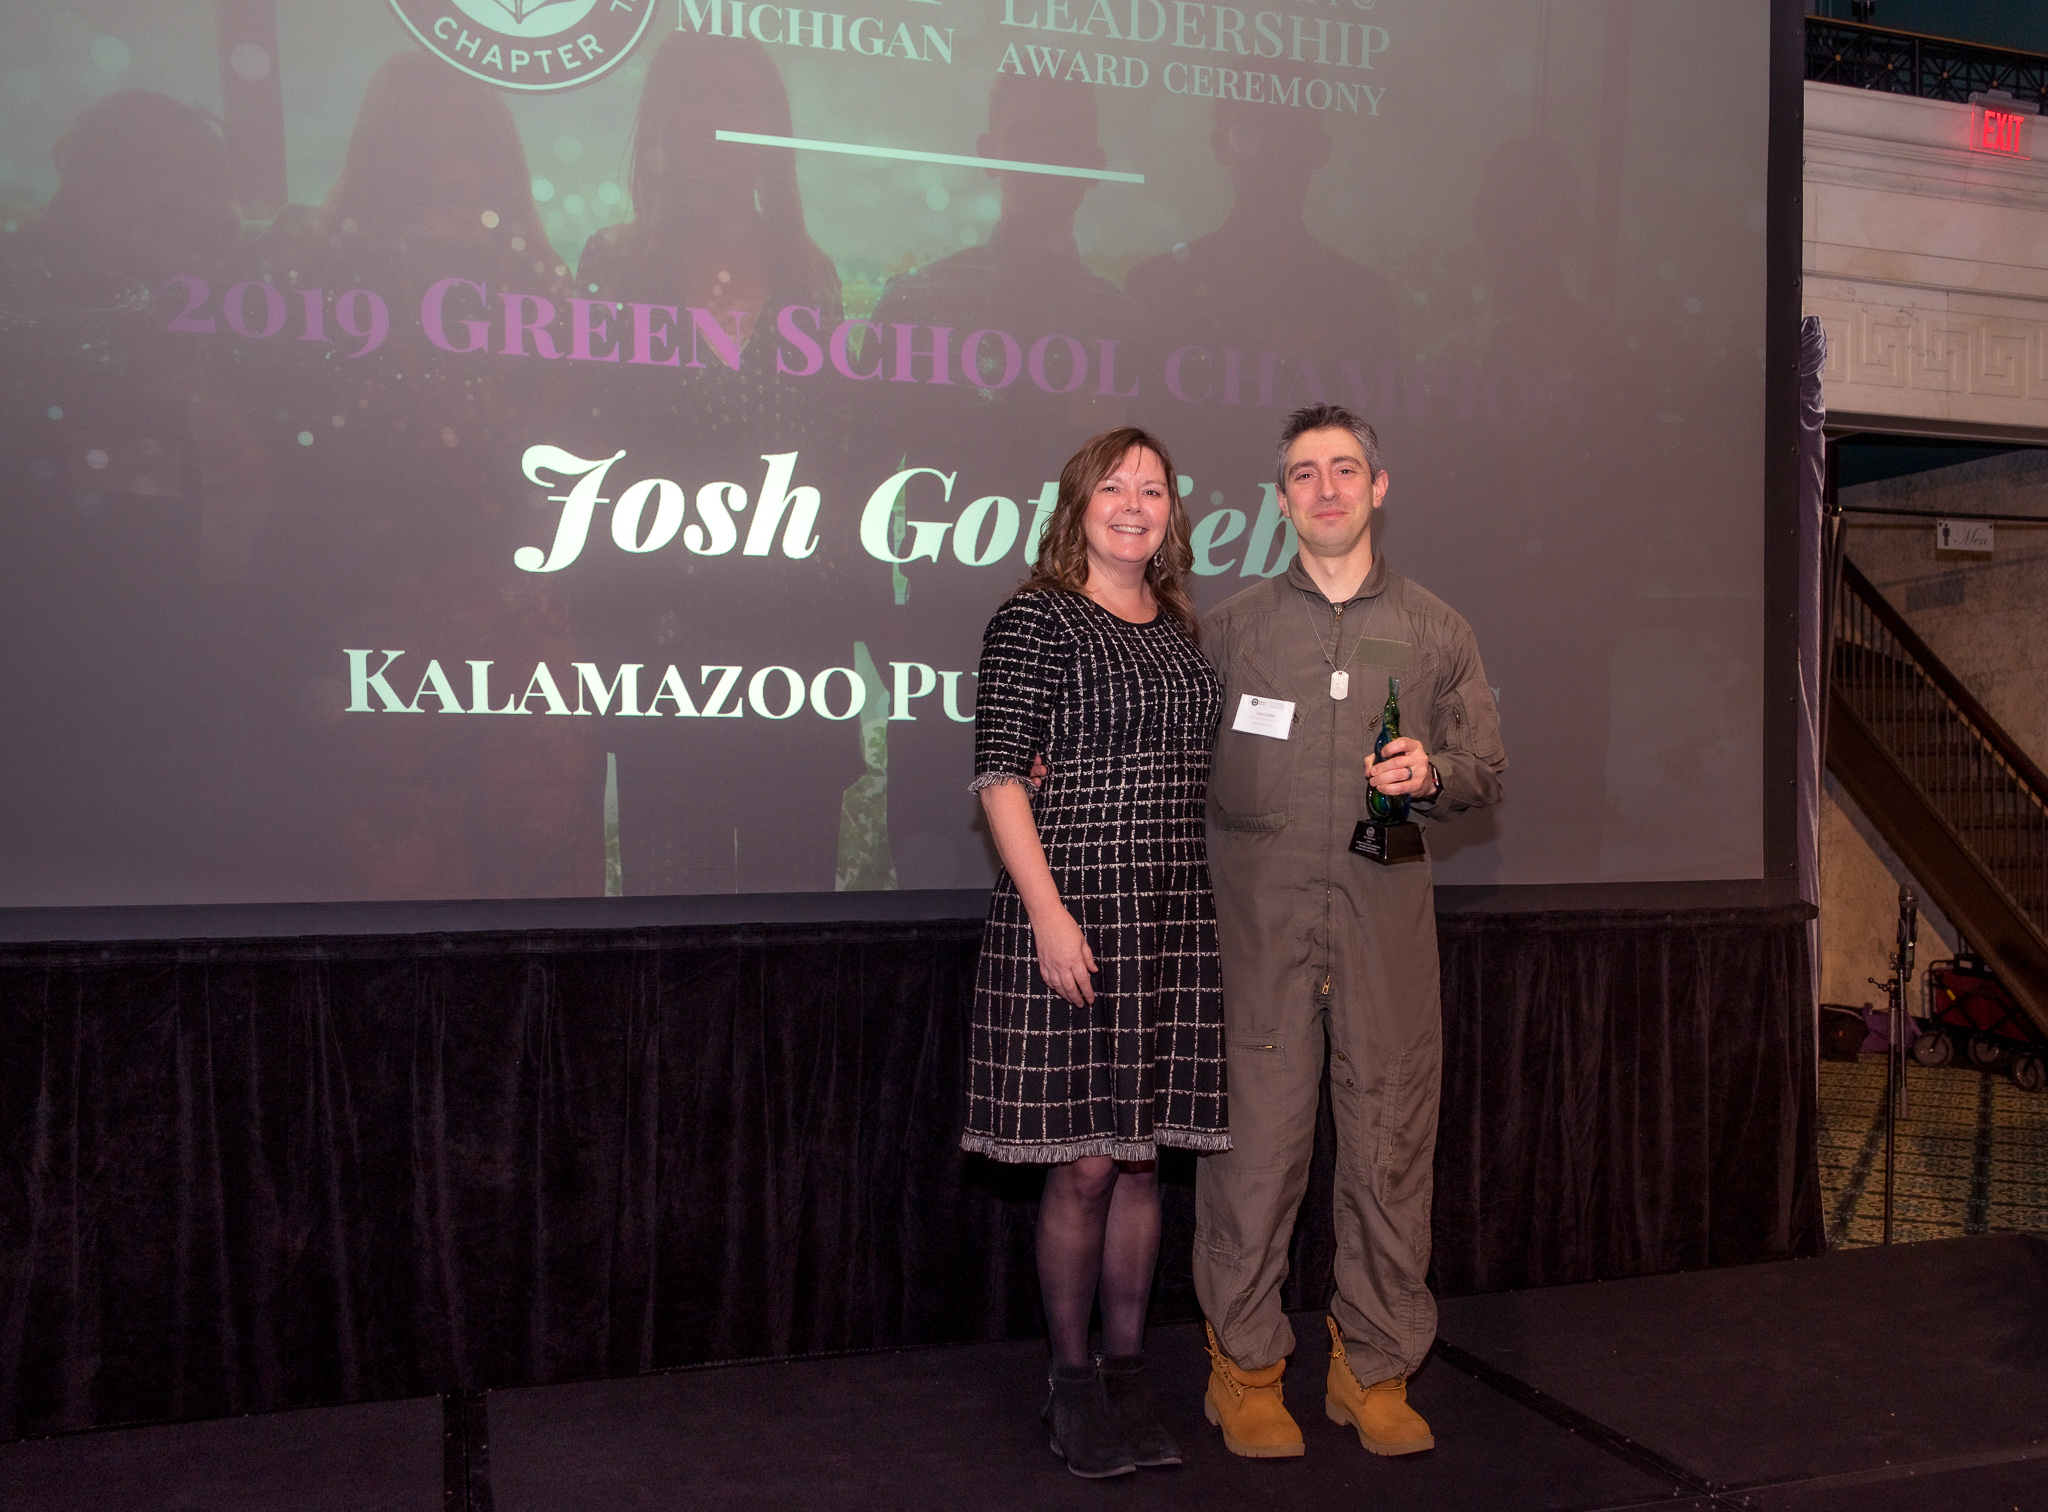 Josh Gottleib accepts award from Cheri Holman at 2019 Leadership Award Ceremony.